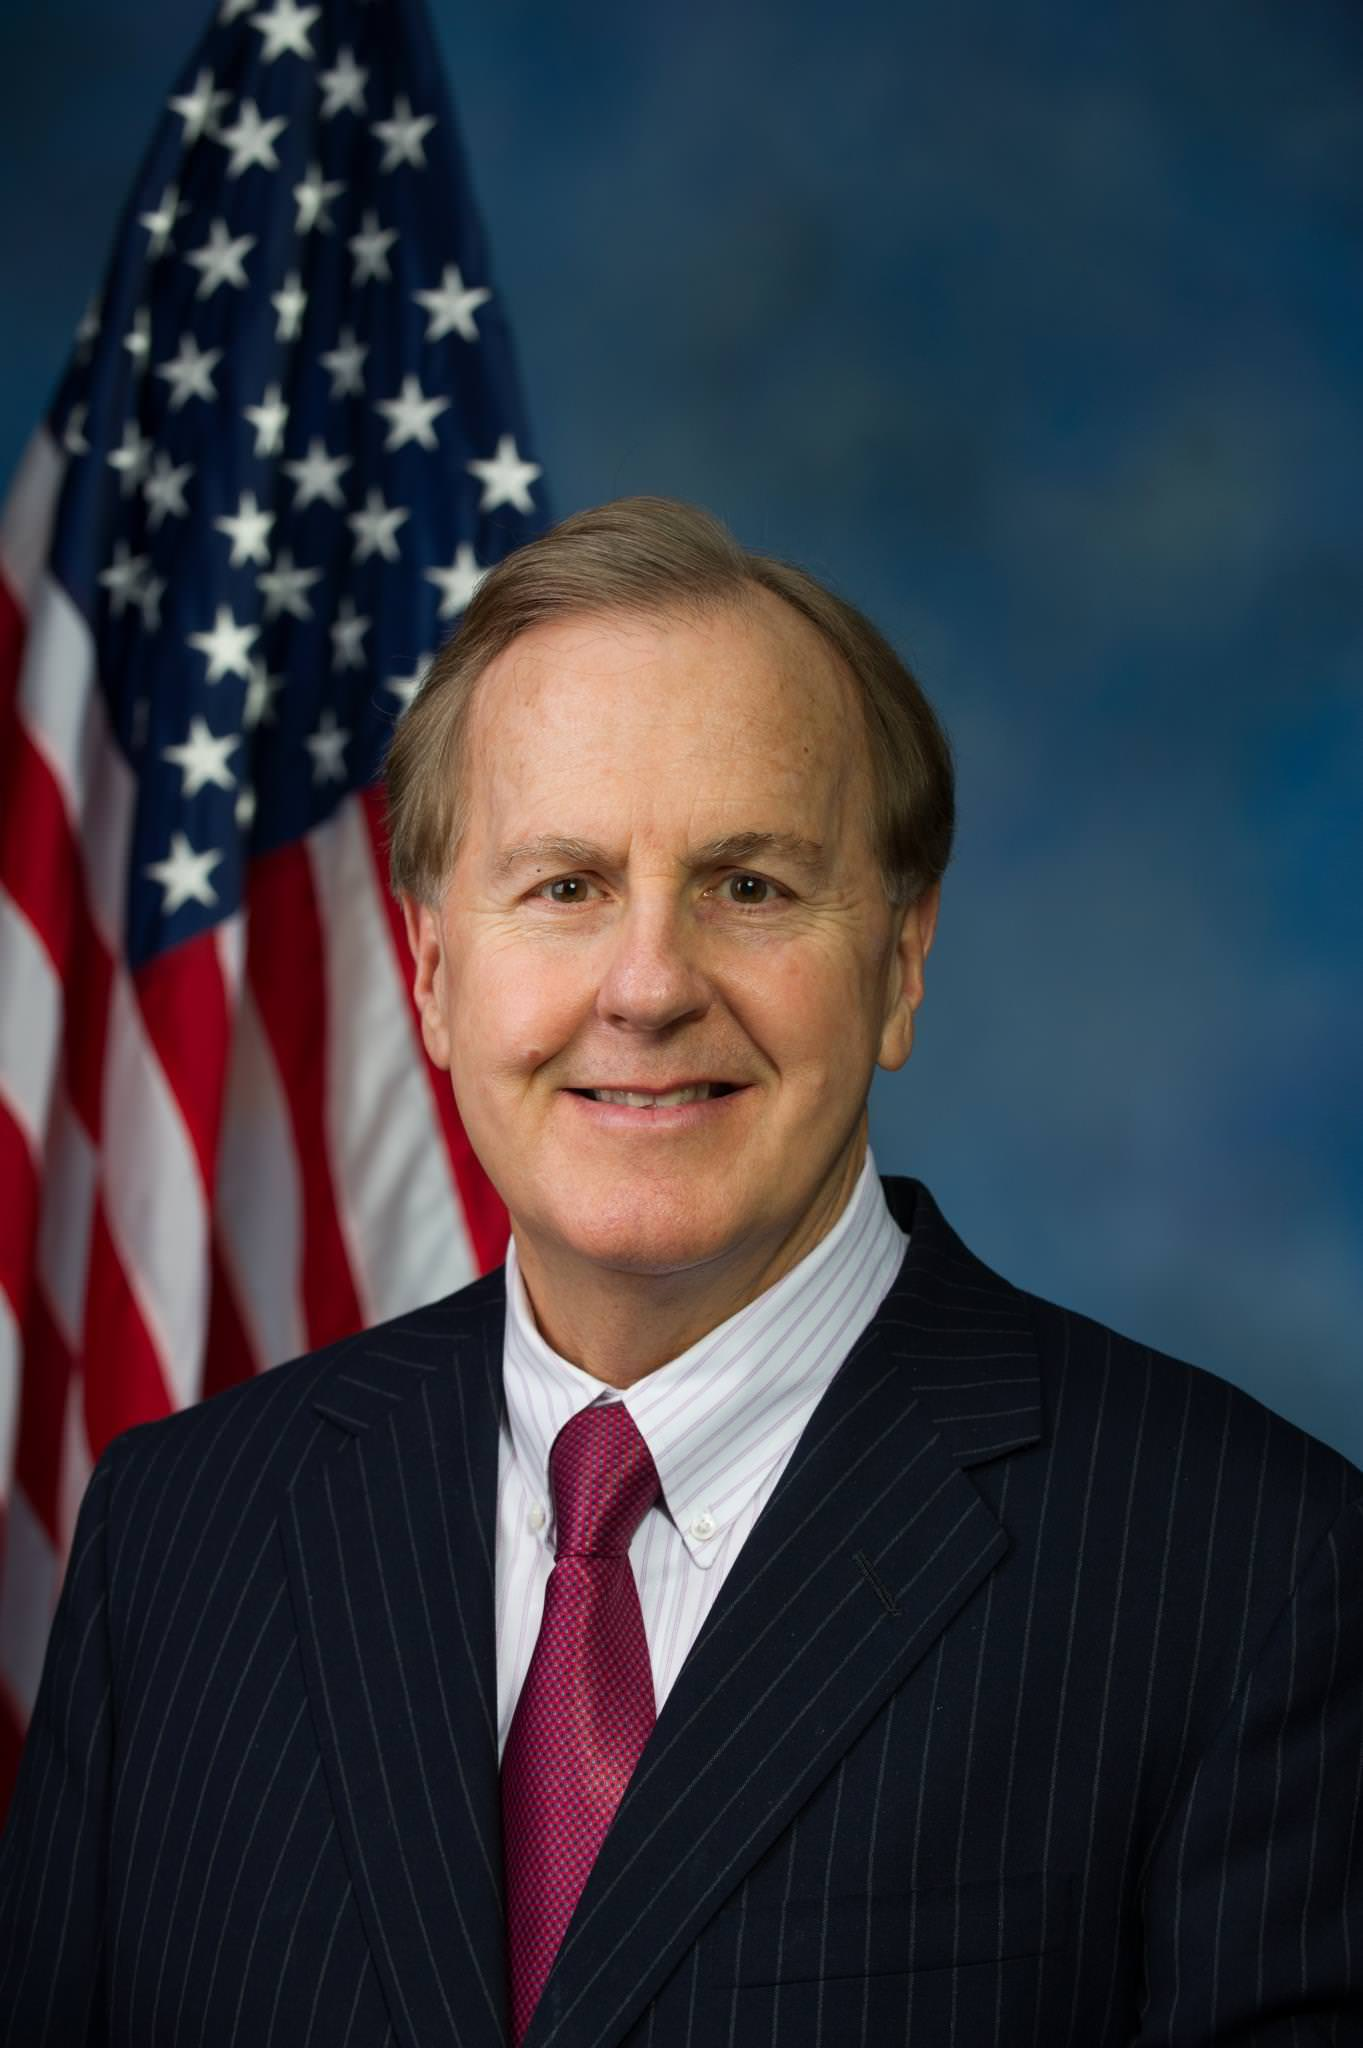 Why Robert Pittenger is essentially correct about discrimination